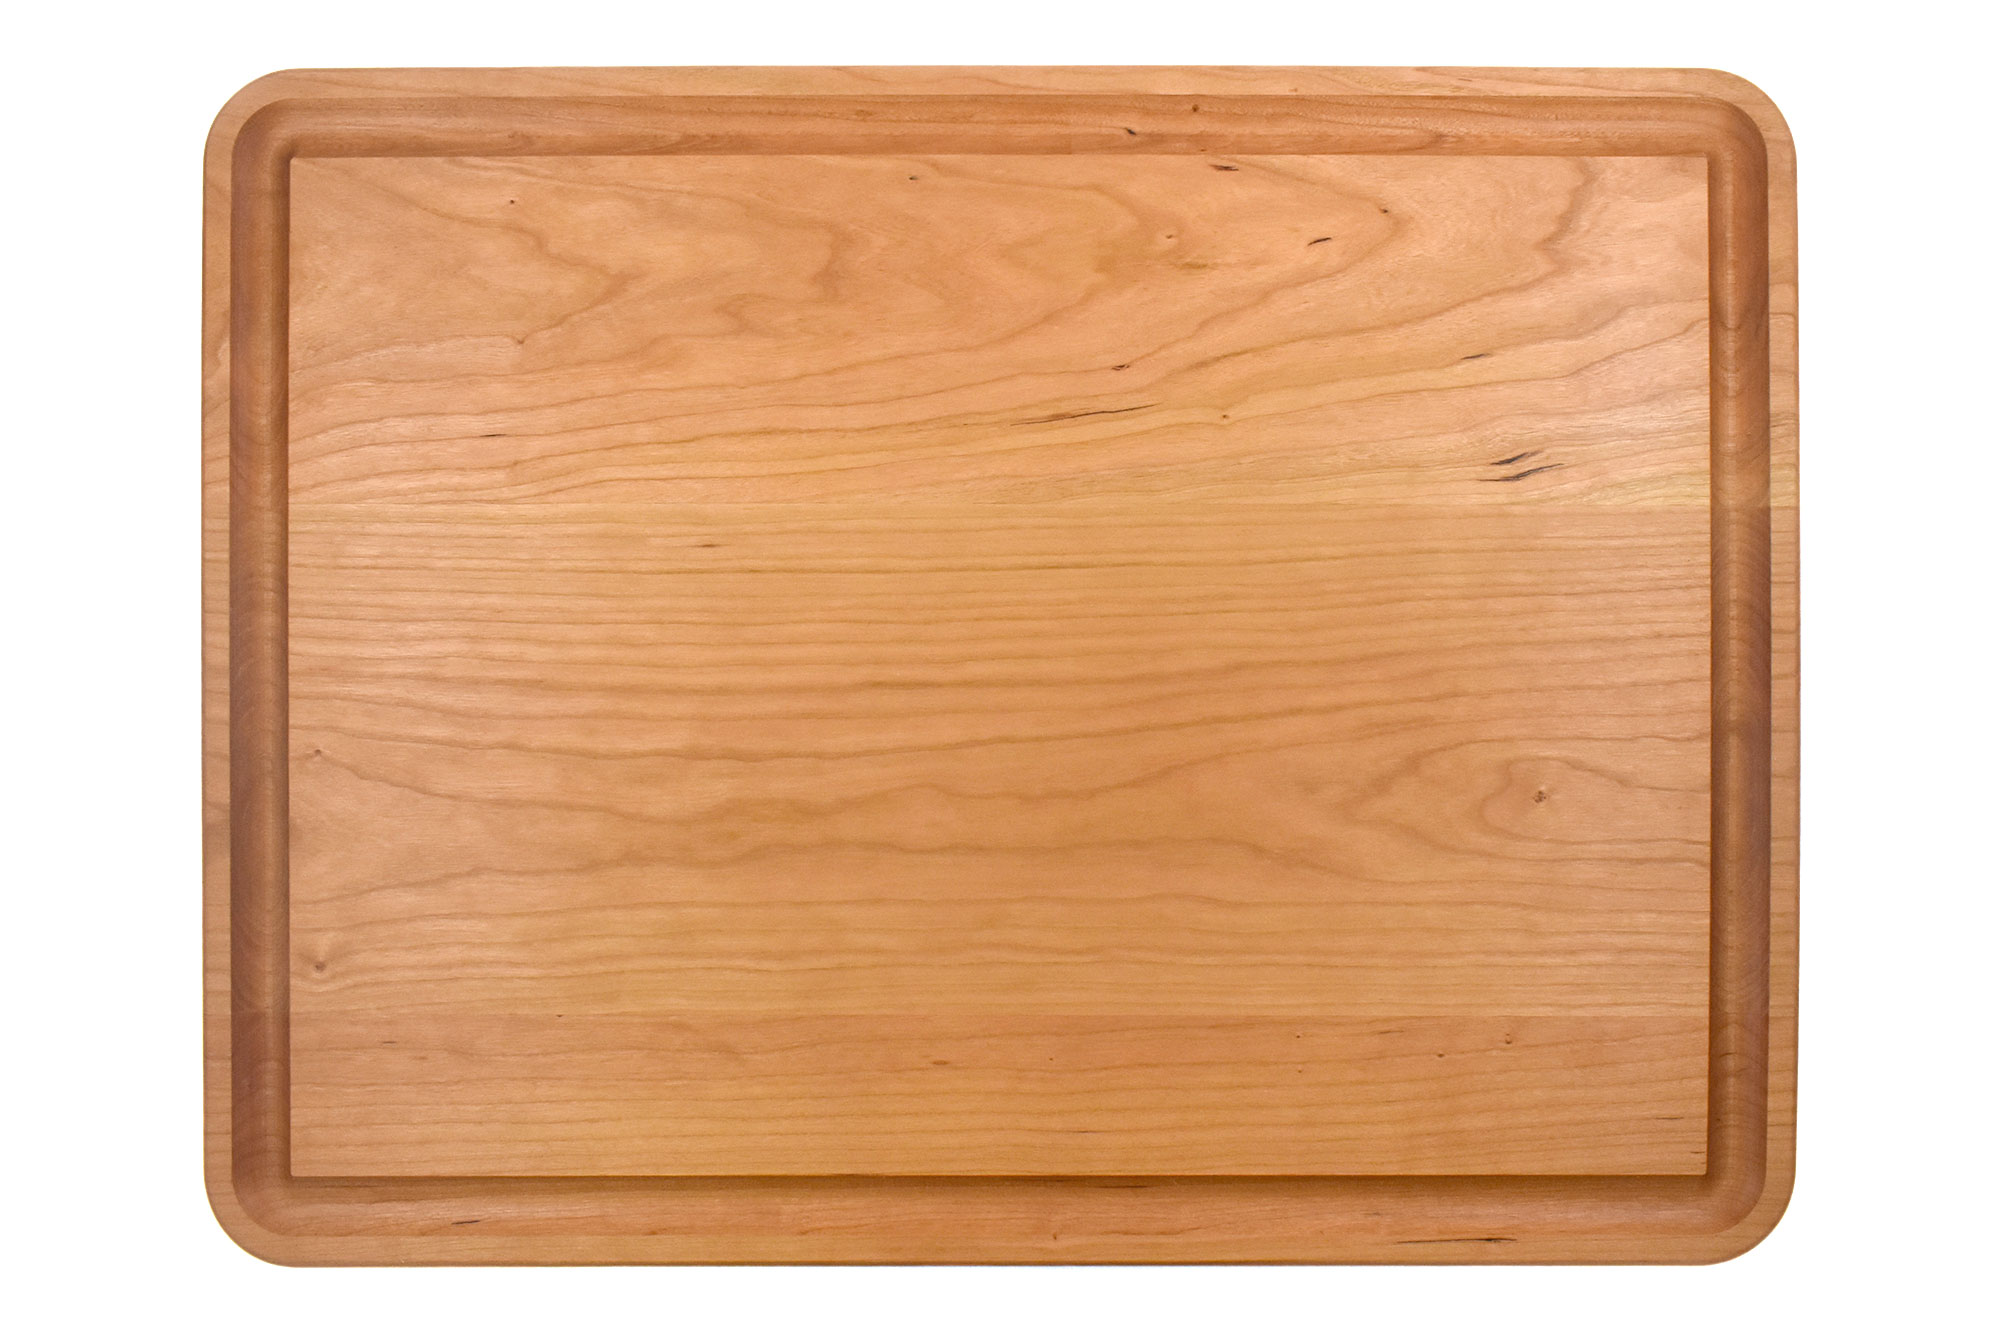 1 1/4 Butcher board with juice groove